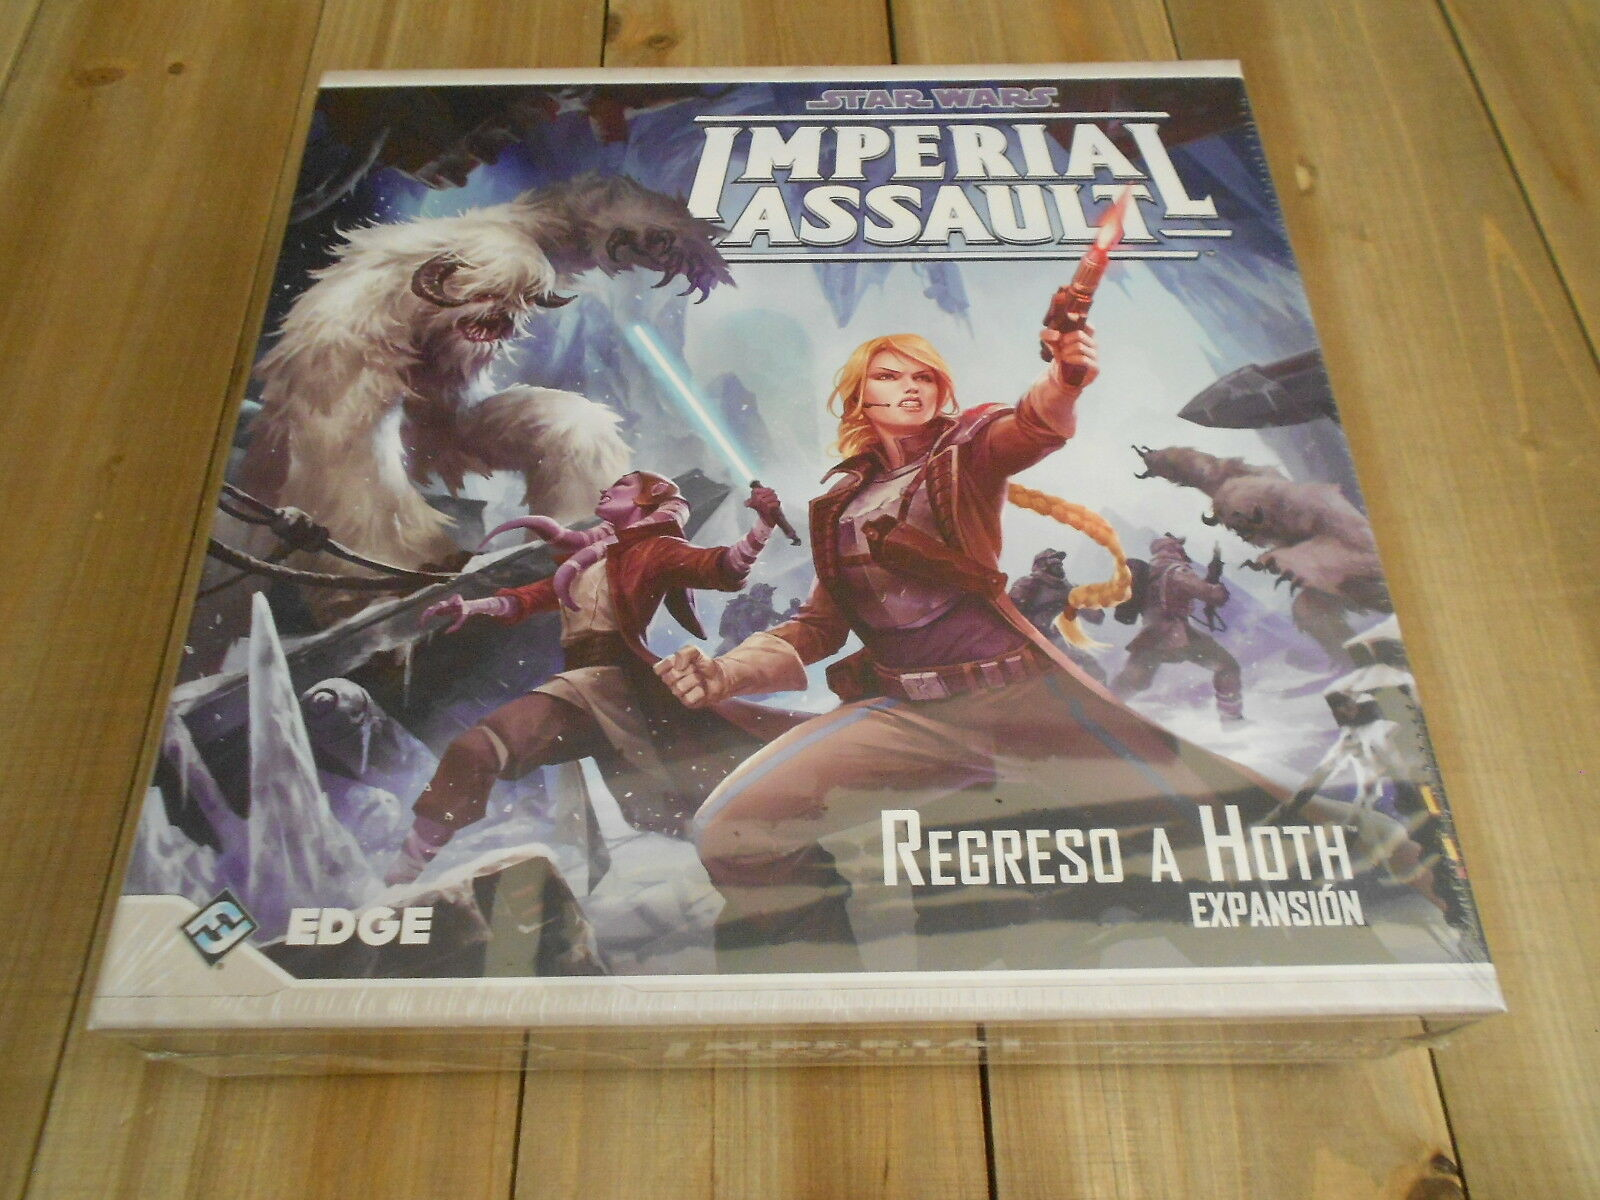 STAR WARS IMPERIAL ASSAULT - Return to Hoth - expansion - EDGE - set table